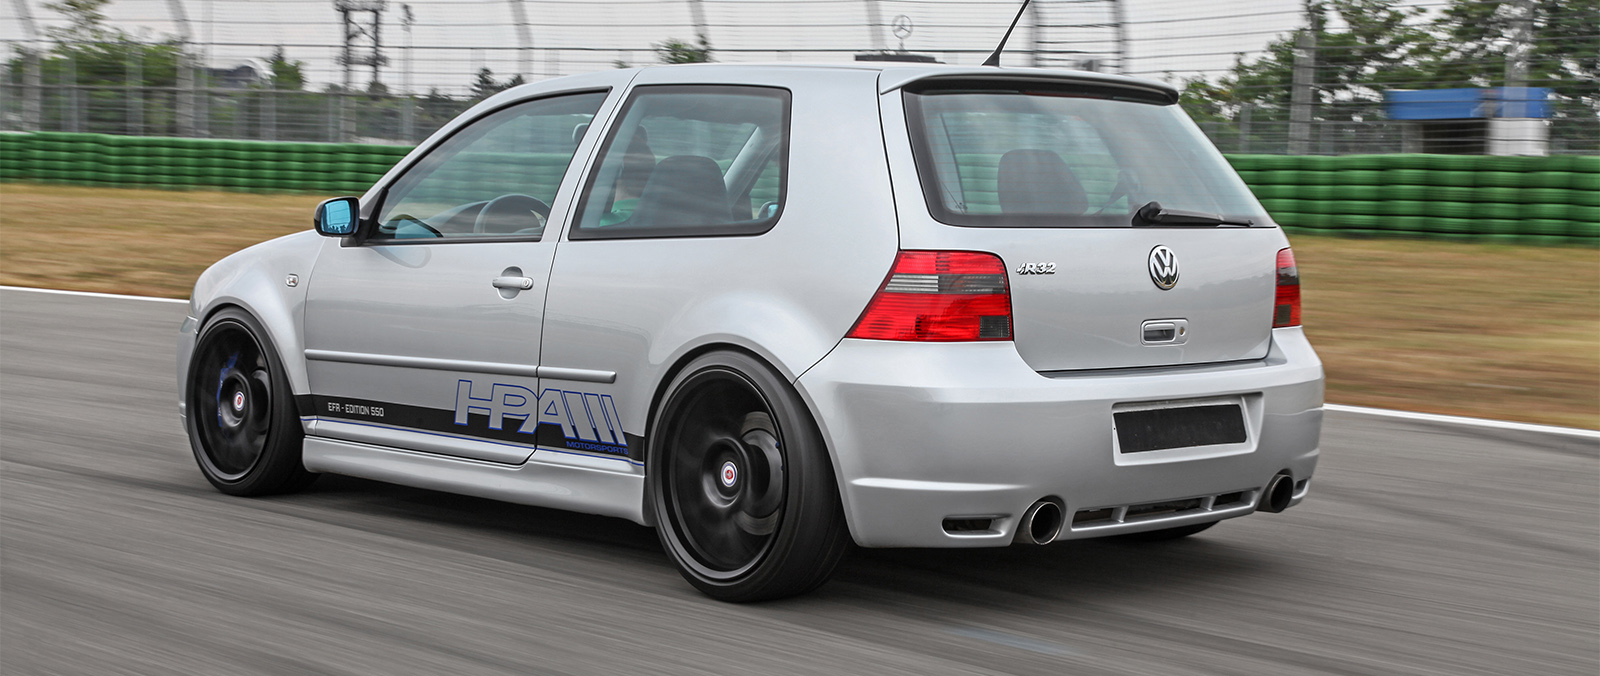 Golf R32 met HPERFORMANCE